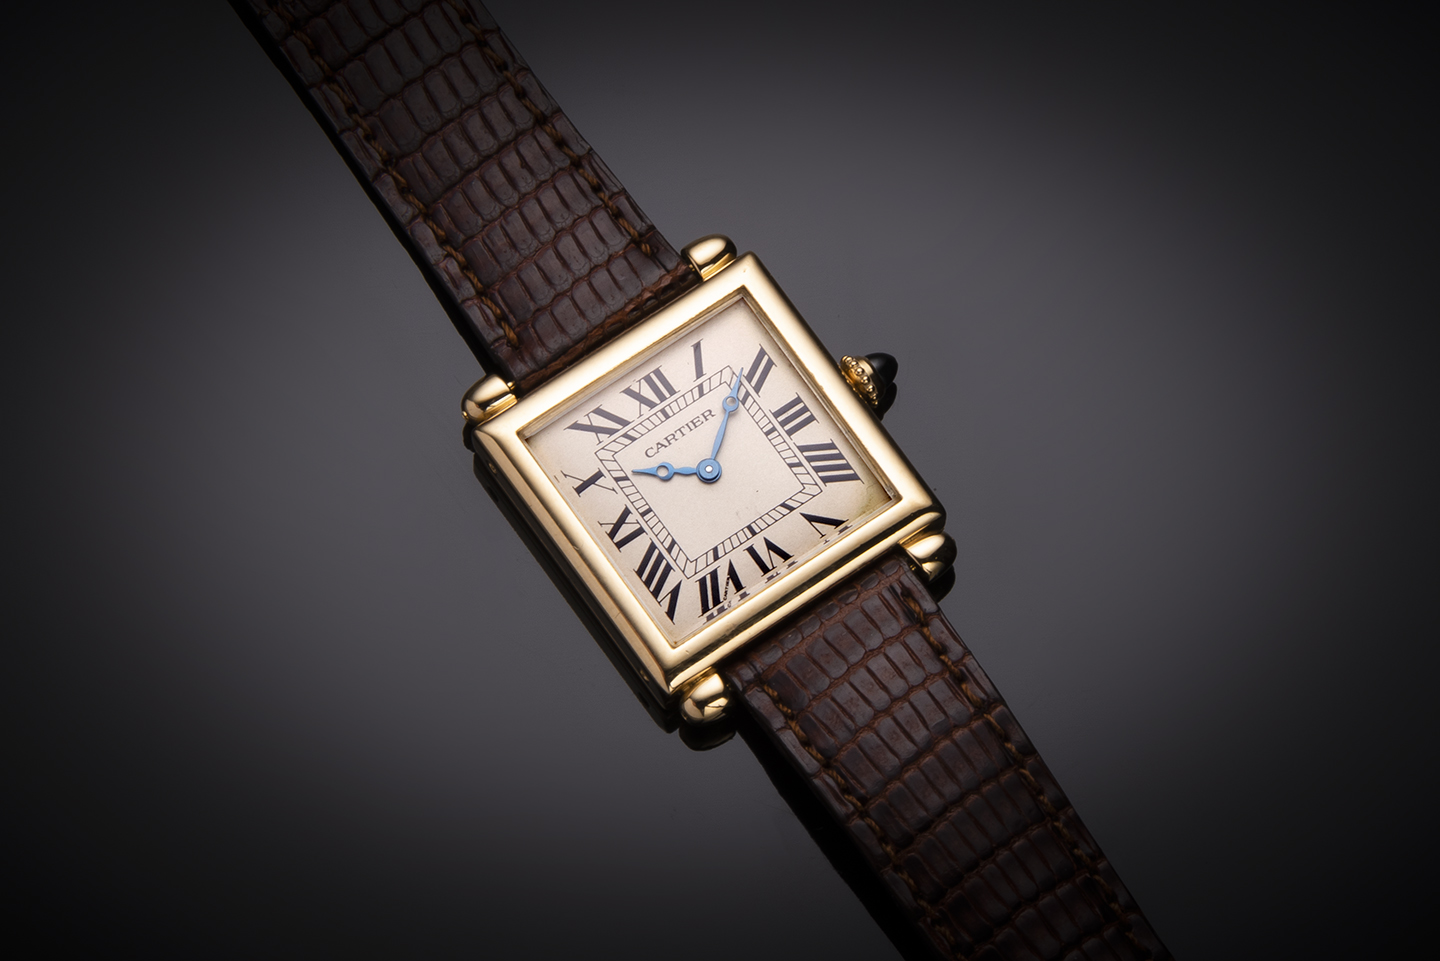 Montre Cartier obus or-1